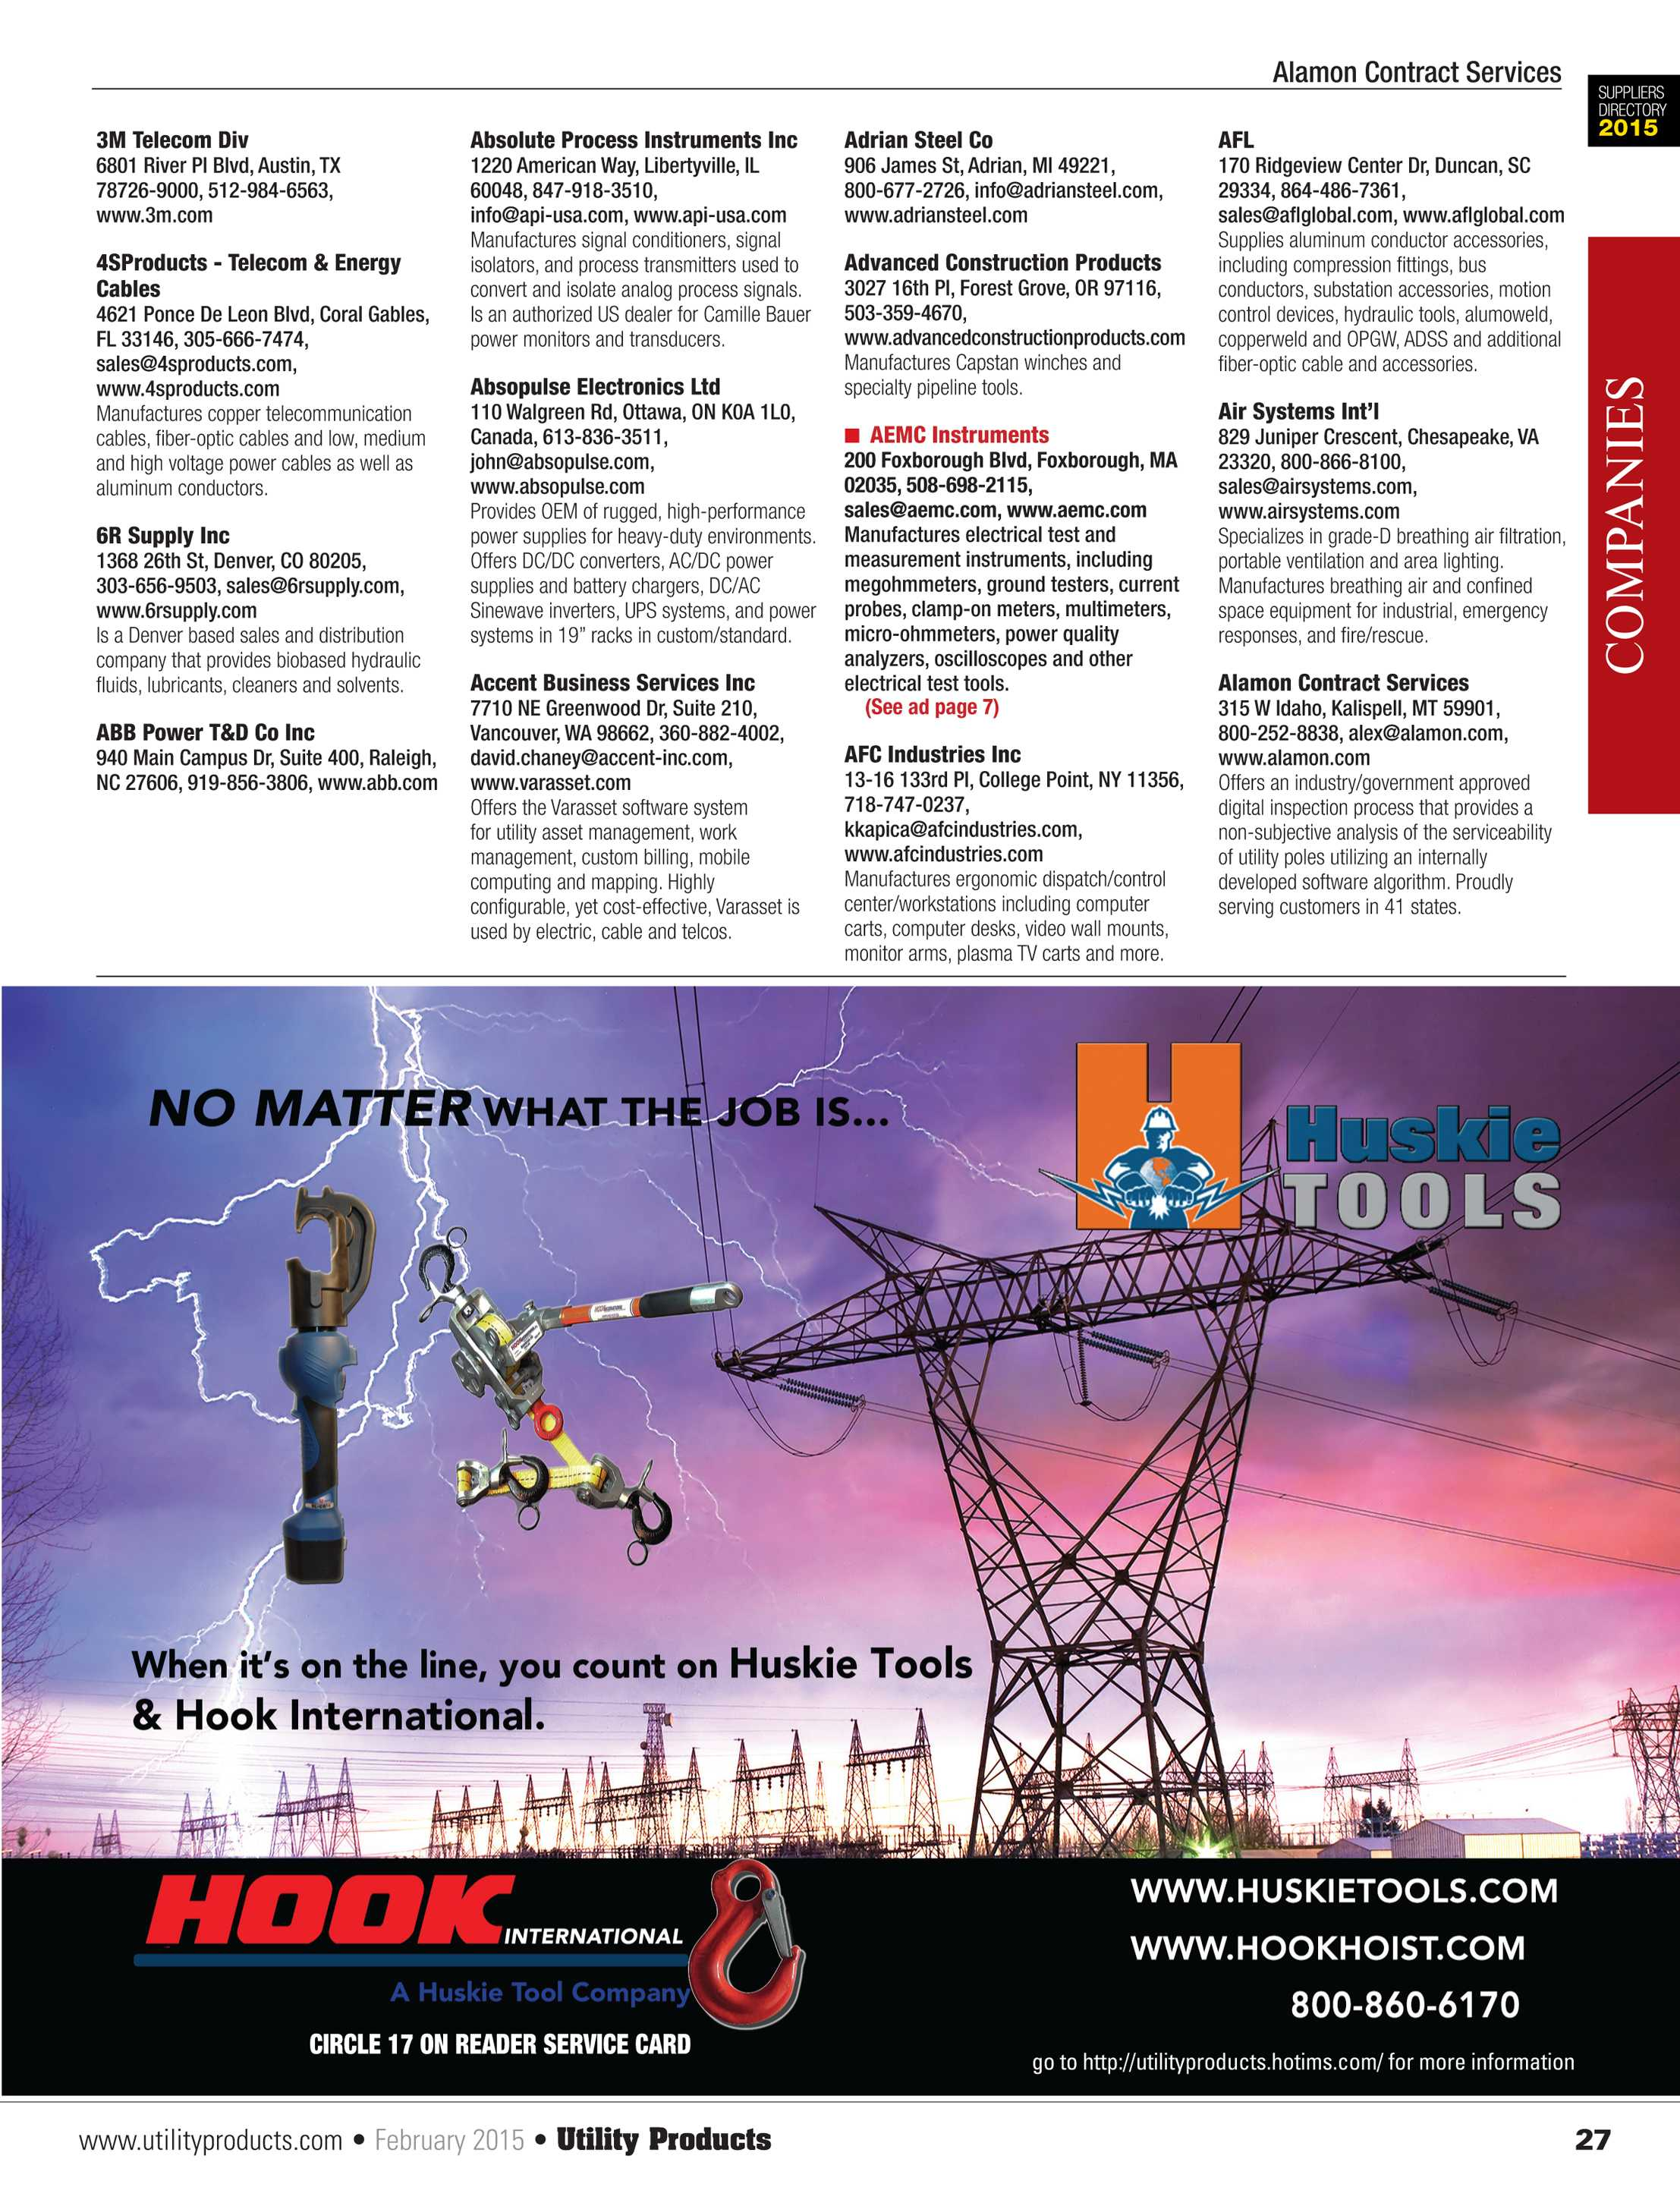 Utility Products - February 2015 - page 27